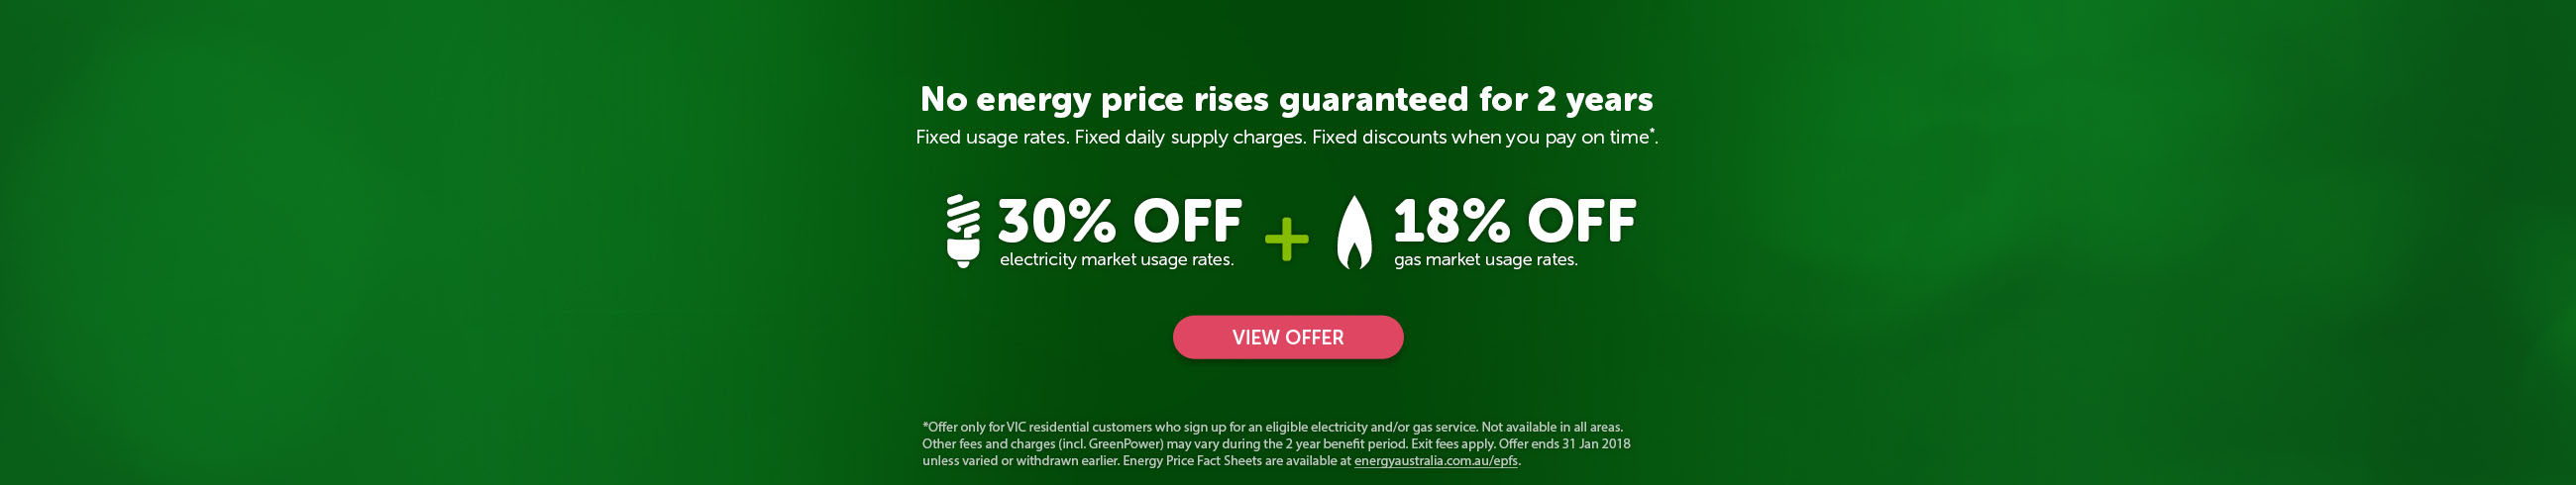 No energy price rises guaranteed for 2 years. Fixed usage rates. Fixed daily supply charges. Fixed discounts when you pay on time*. 30% off electricity market usage rates plus 18% off gas market usage rates.